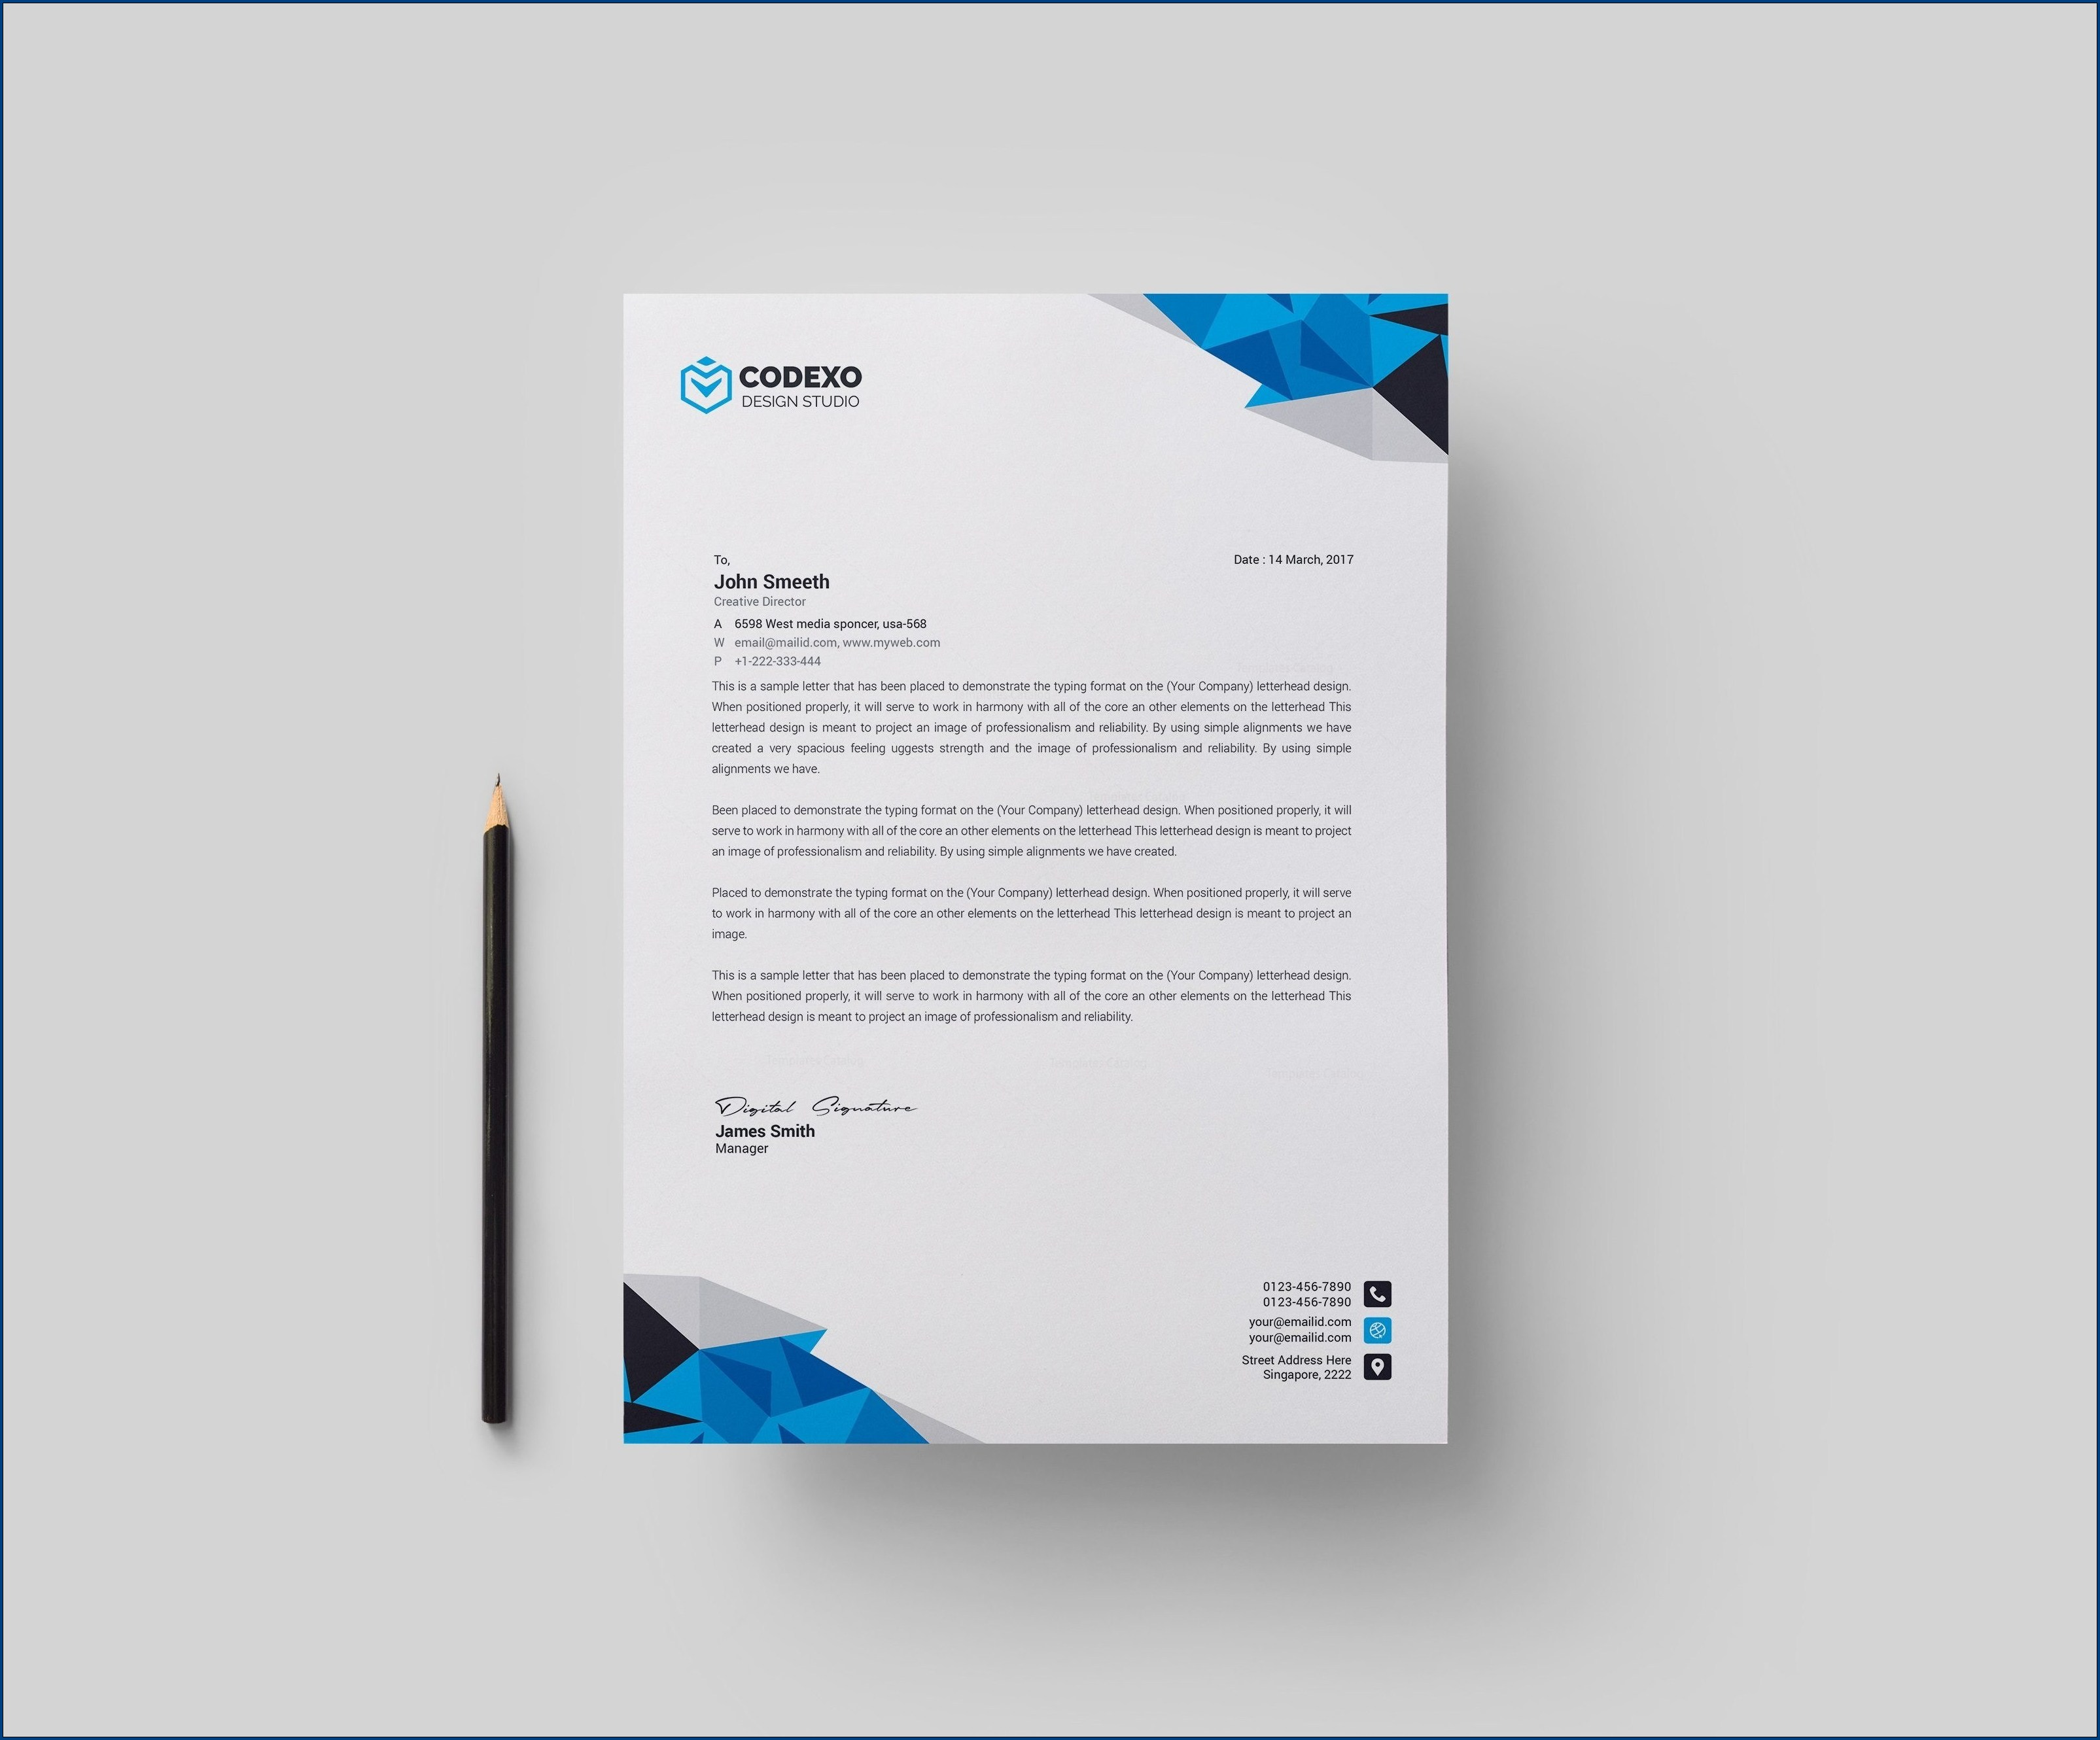 √ Free Printable Corporate Letterhead Template | Templateral Examples Personal Letterhead Templates on personal training templates, onenote notebook templates, business cards templates, personal resume templates, personal card templates, elegant border design templates, personal statement templates, personal flyer templates, personal trainer websites templates, personal planner templates, personal invoice templates, personal ad templates, personal newsletter templates, logo templates, personal stationery templates, personal branding templates, creative word resume templates, personal letter templates, excel personal trainer client templates, wedding planner templates,